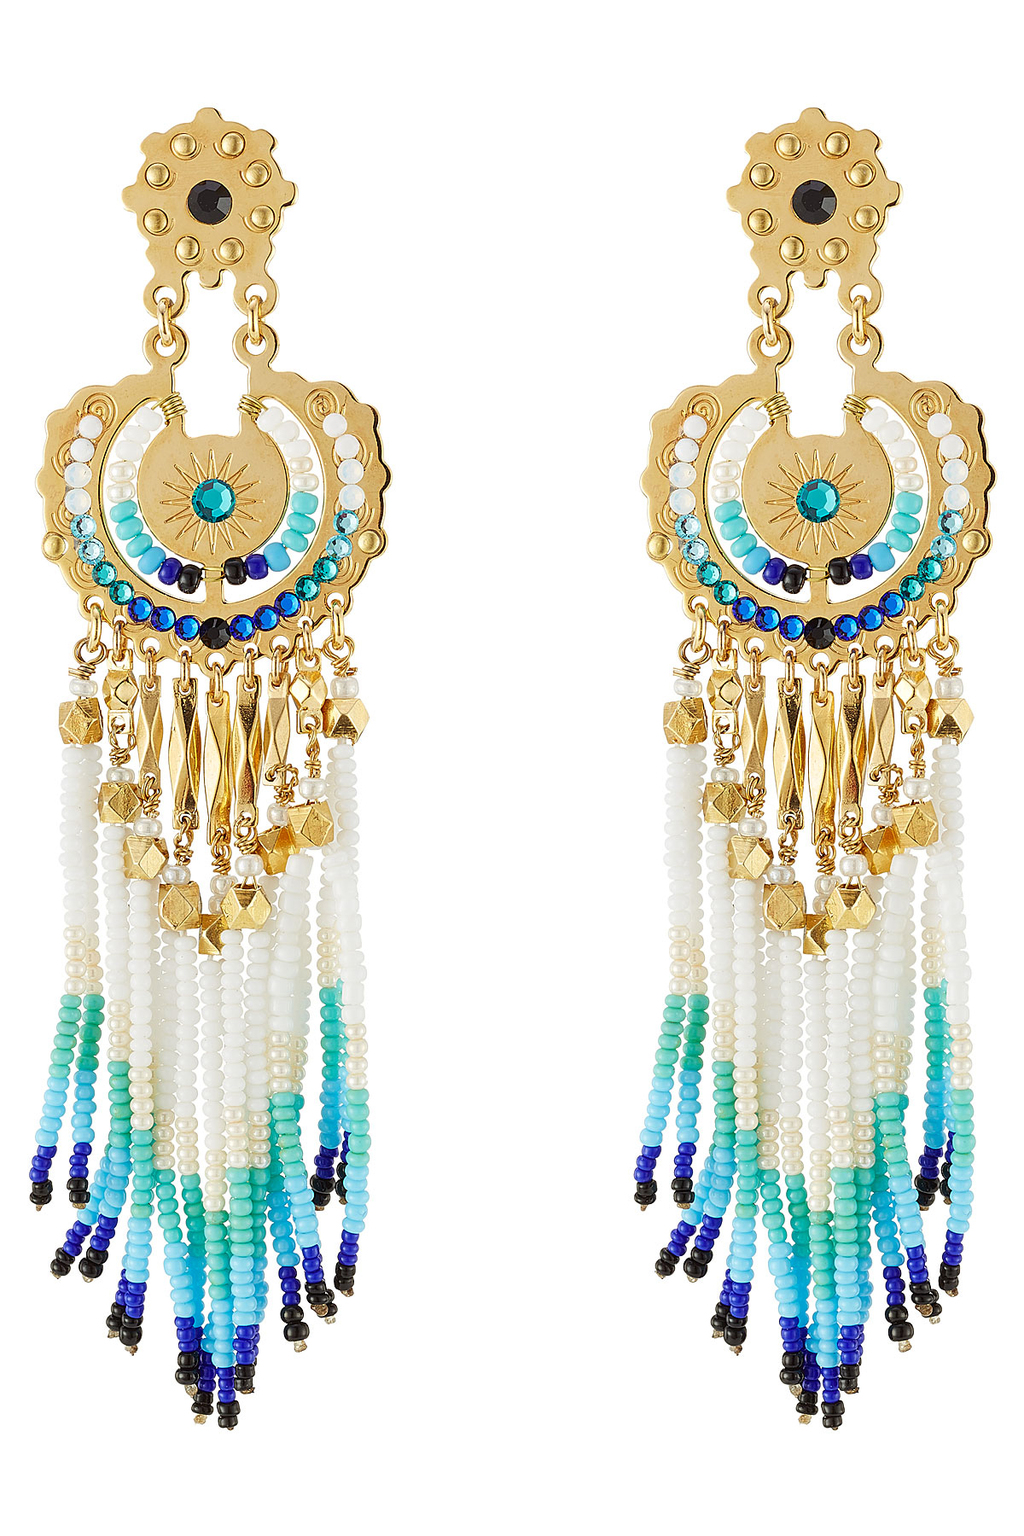 Apache Small 24kt Gold Plated Chandelier Earrings - secondary colour: turquoise; predominant colour: gold; occasions: evening, occasion, holiday; style: chandelier; length: long; size: large/oversized; material: chain/metal; fastening: pierced; finish: metallic; embellishment: jewels/stone; season: s/s 2016; wardrobe: highlight